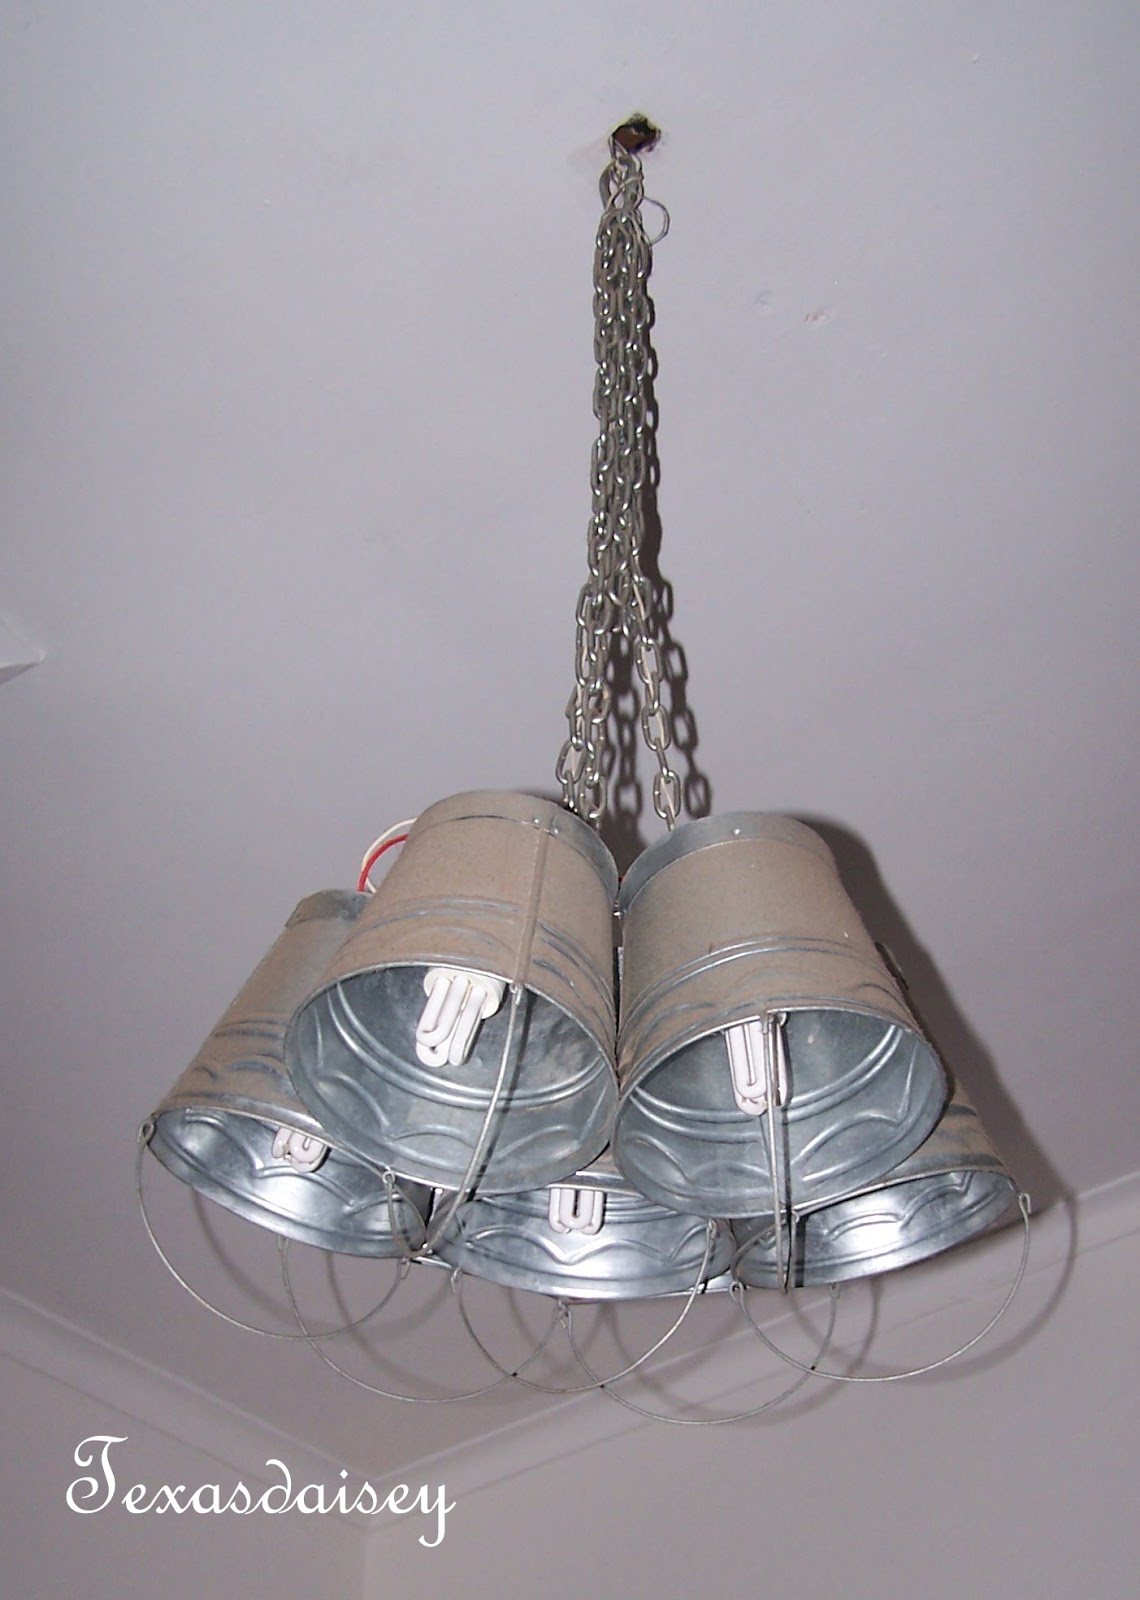 Texasdaisey Creations: Galvanized Light Fixture